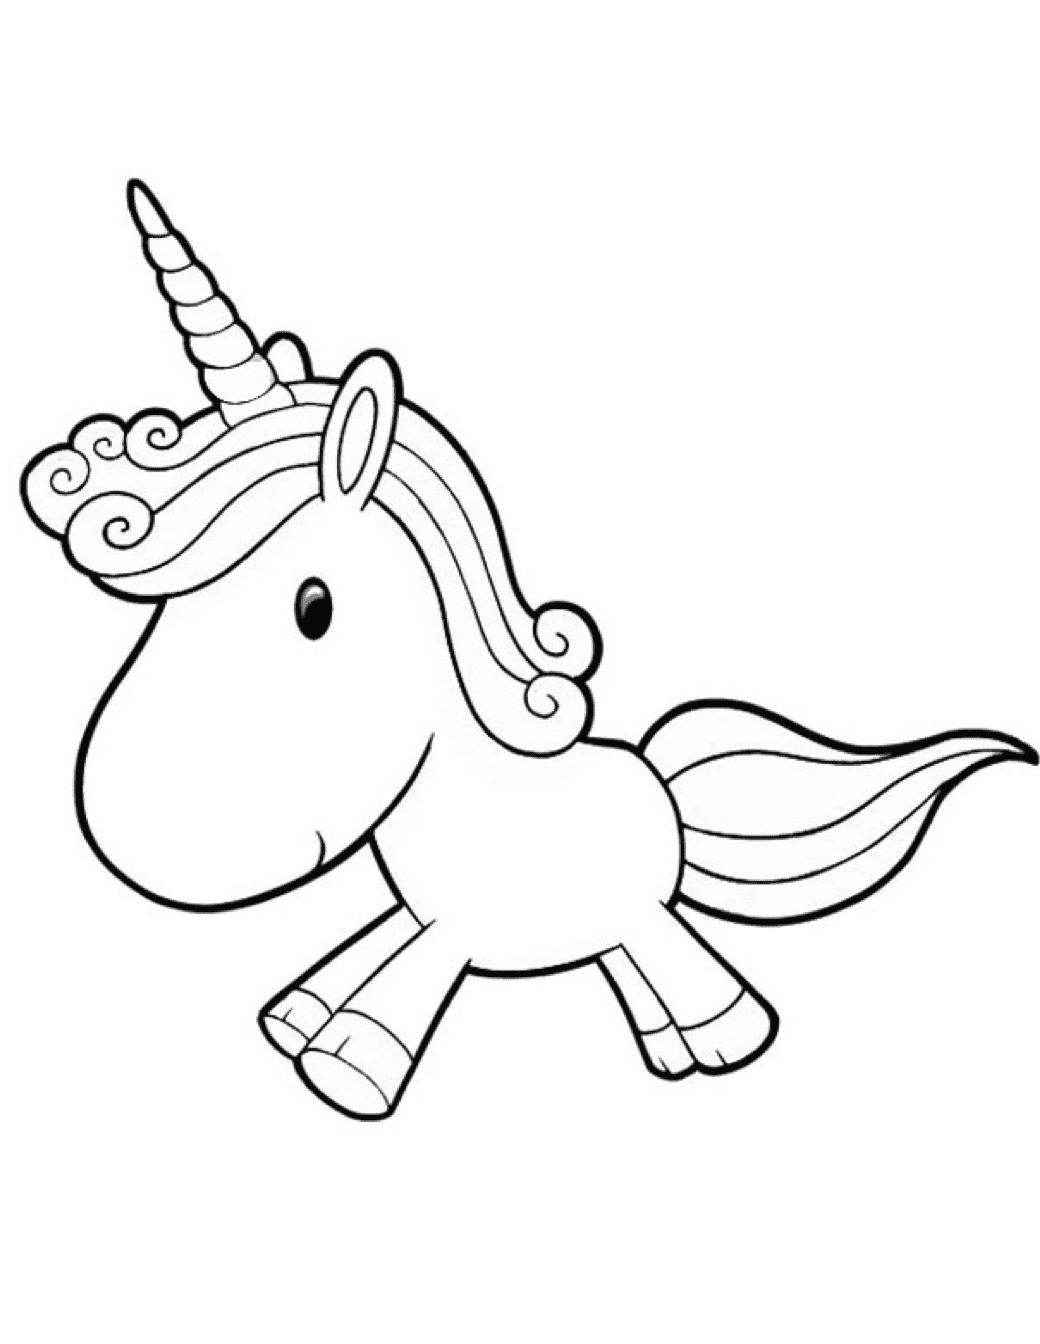 cartoon unicorn coloring page - Coloring Pages Unicorn